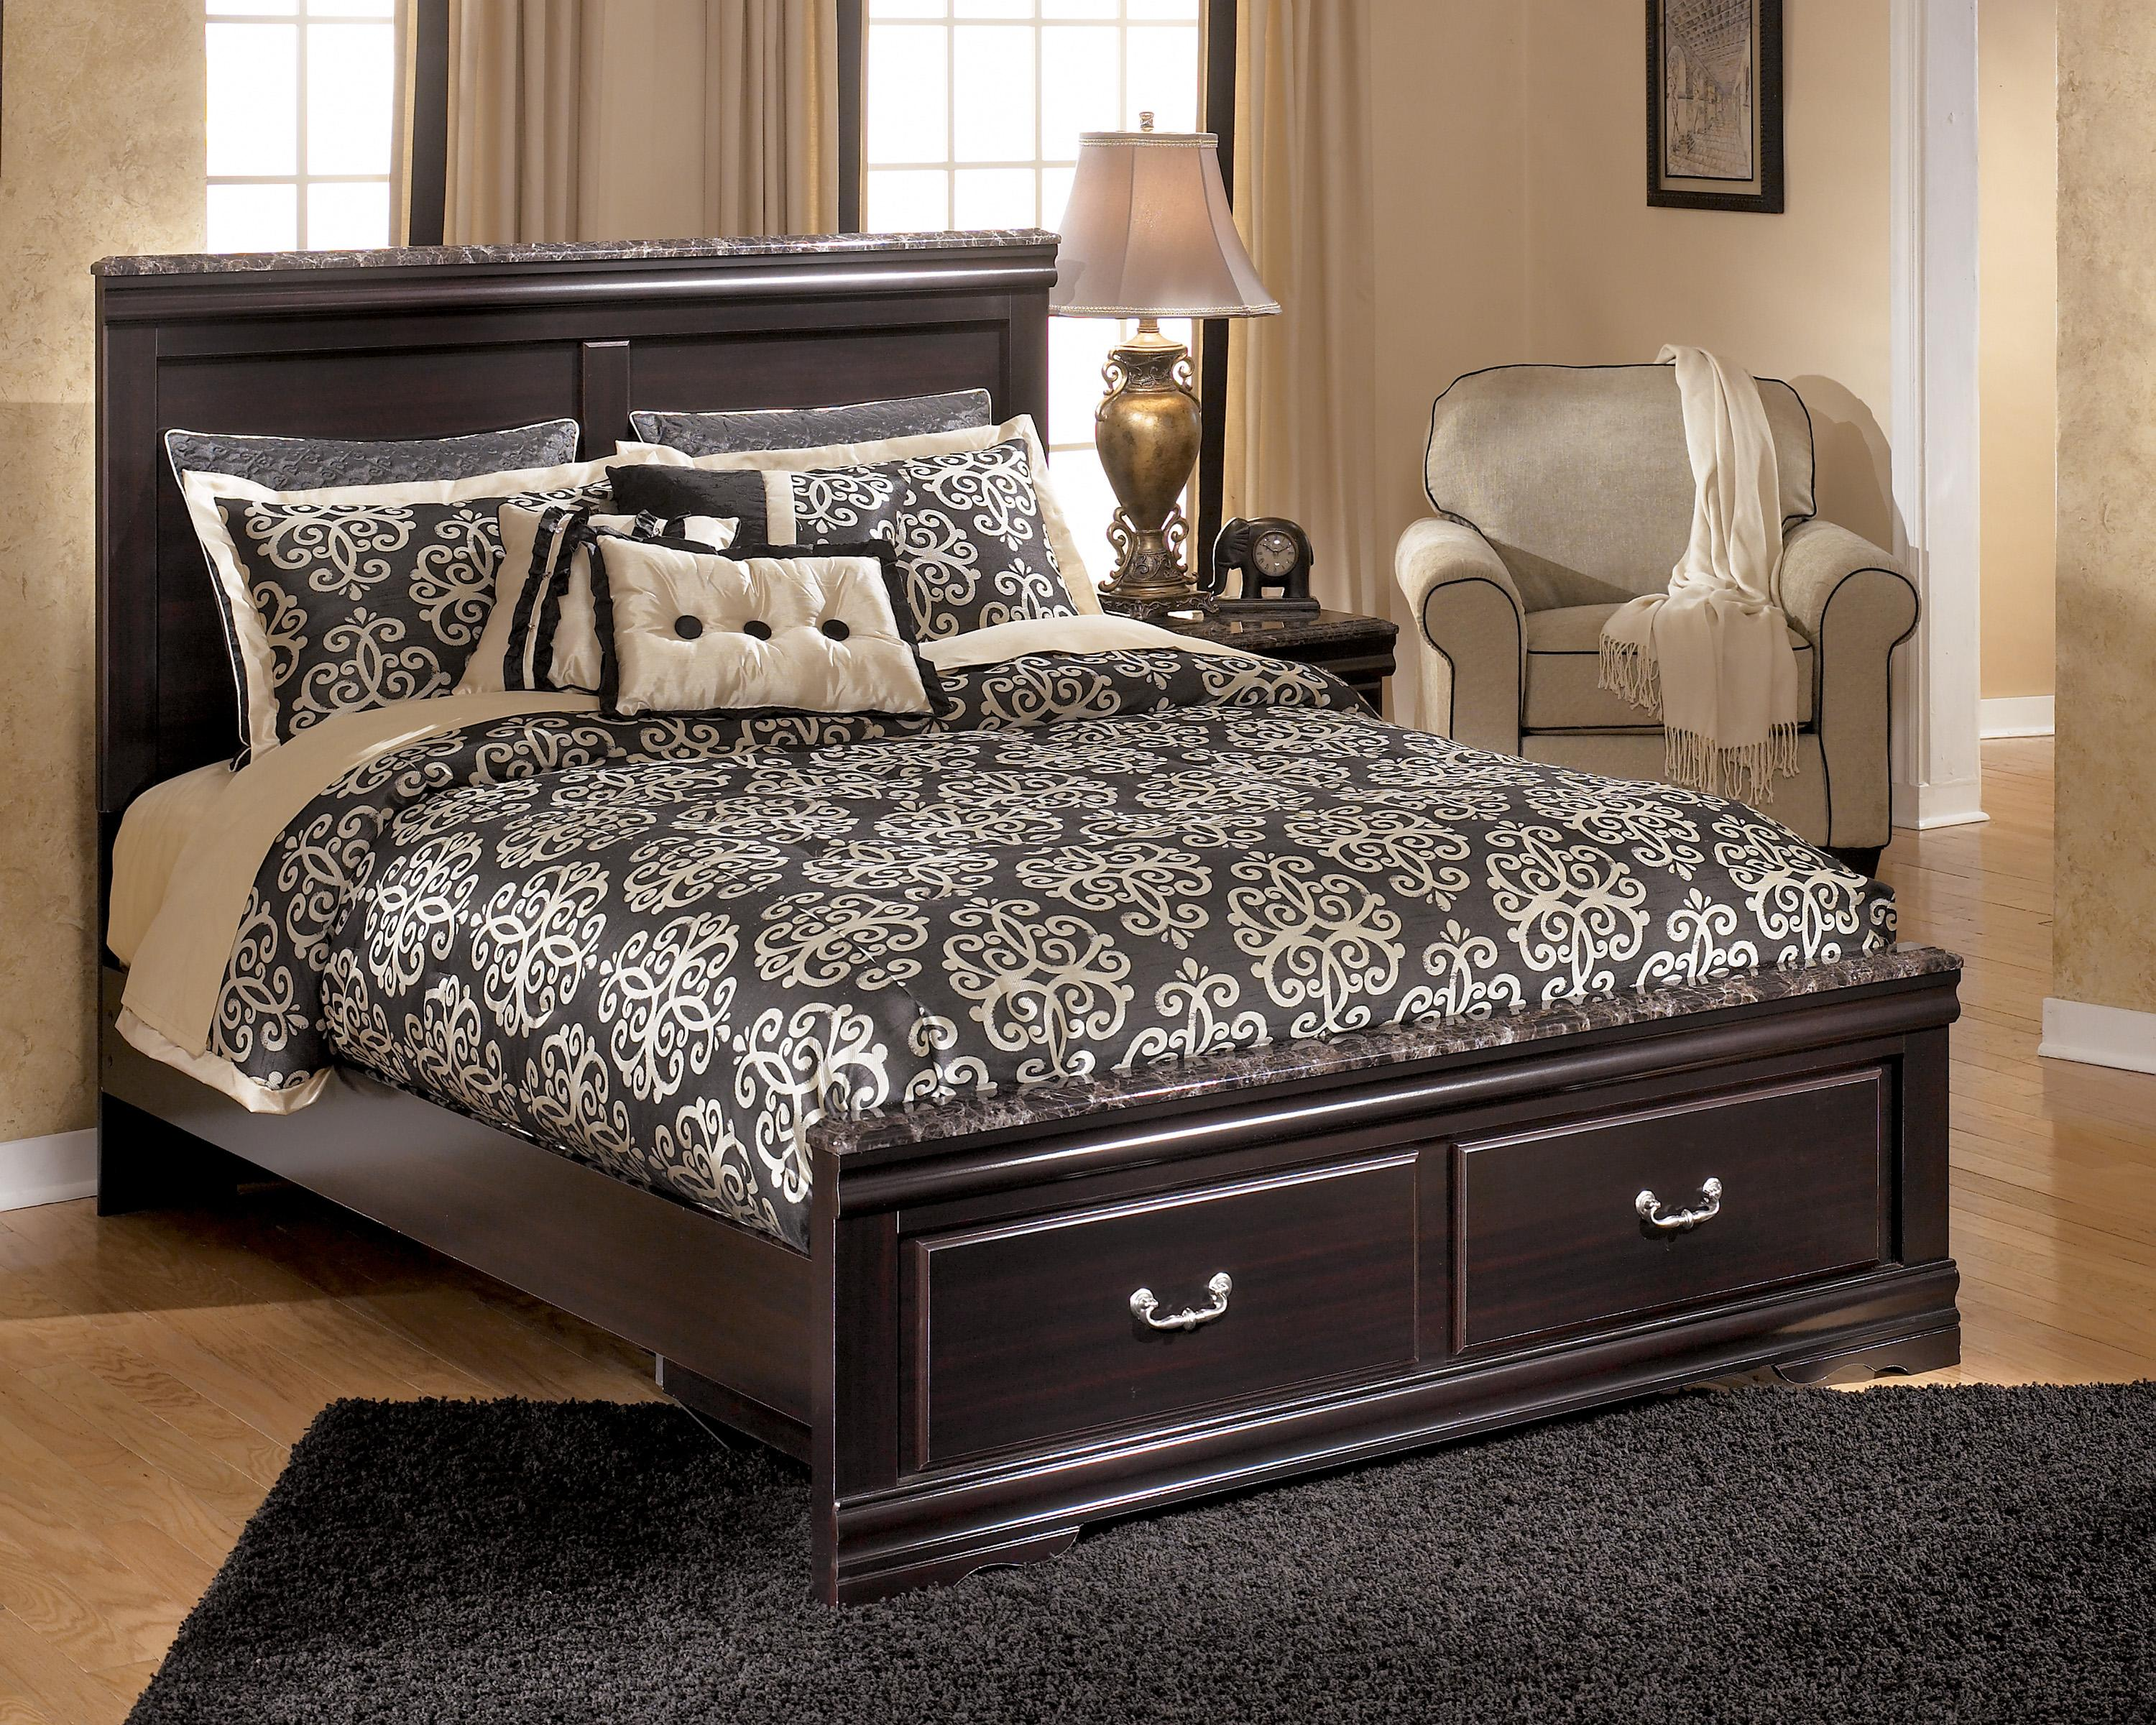 Signature Design by Ashley Esmarelda Queen Storage Bed - Item Number: B179-57+54S+95+B100-13